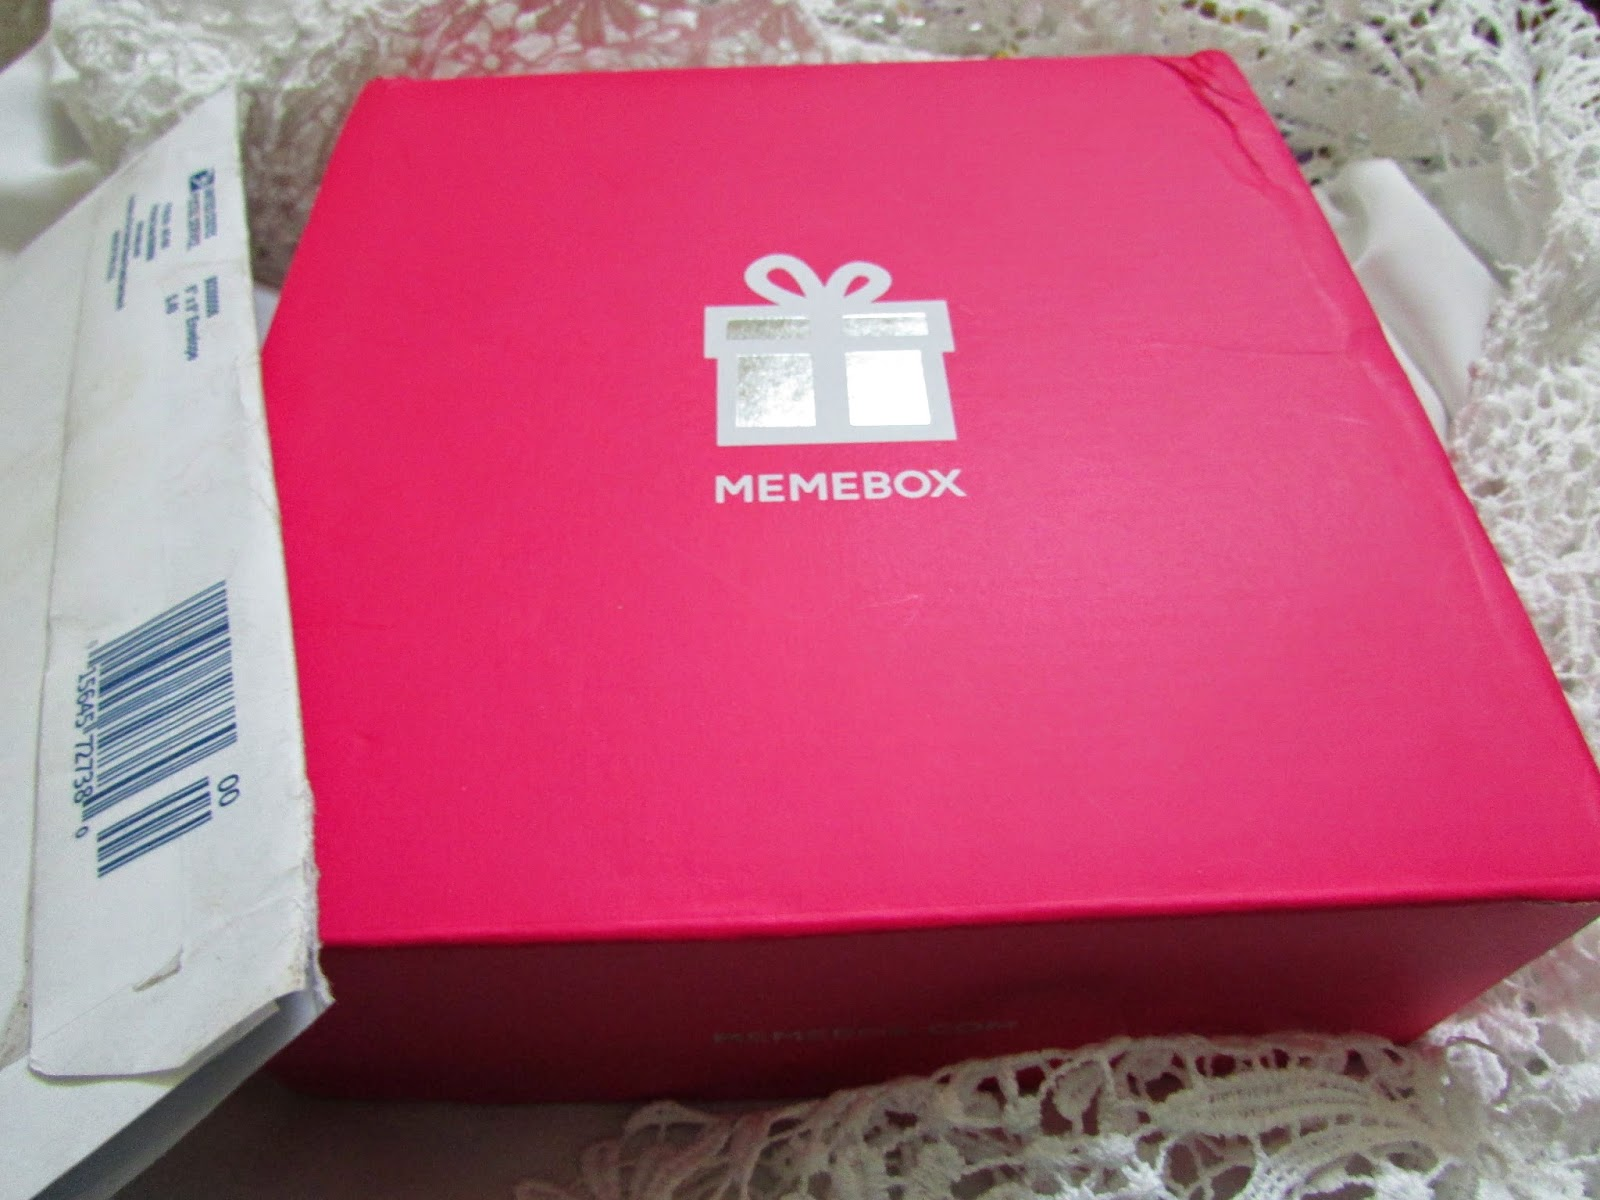 memebox, memebox chocolate box, memebox coupon, memebox coupon code, memebox india, memebox review, memebox review india, memebox shipping, memebox shipping cost, memebox unboxing, memebox unboxing and review,